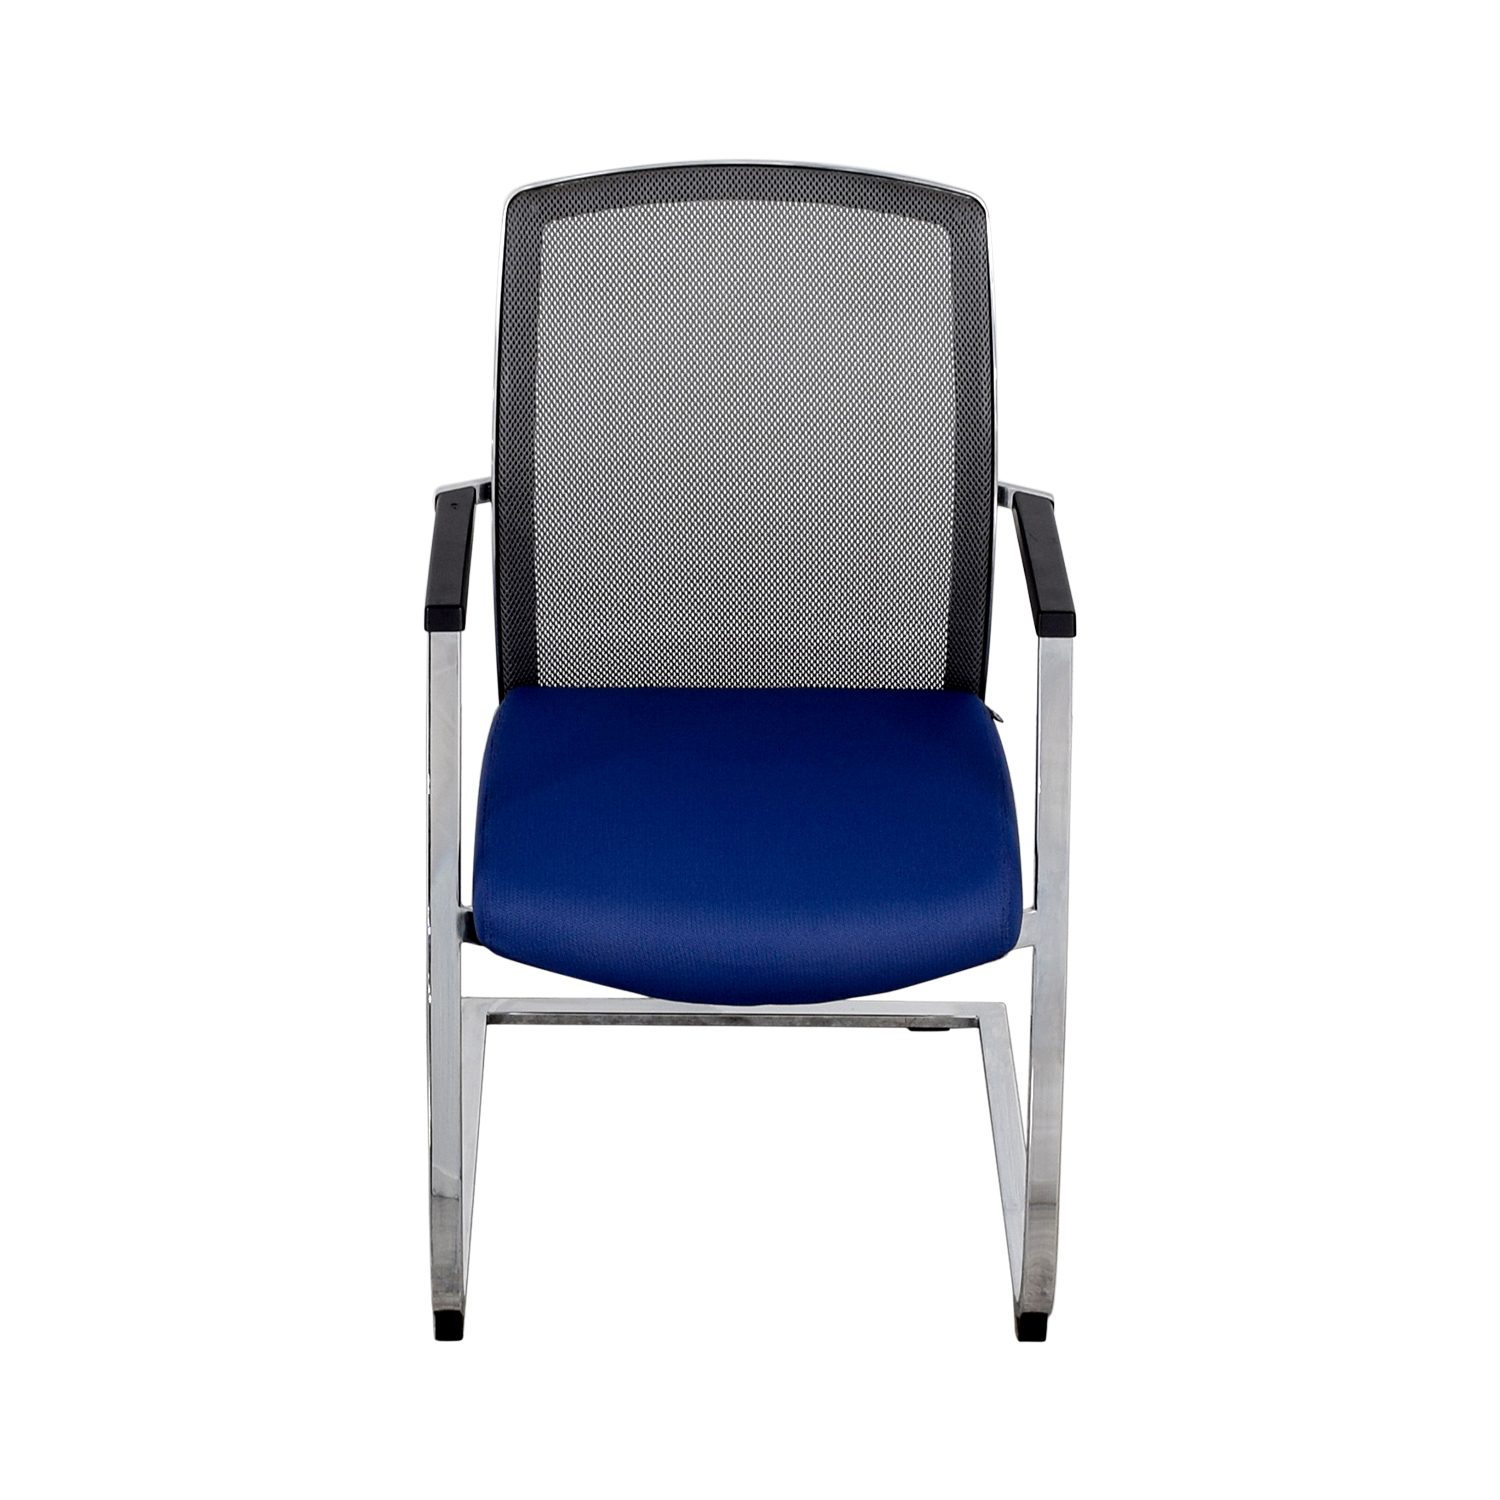 Interstuhl X565 Blue and Chrome Chair / Accent Chairs